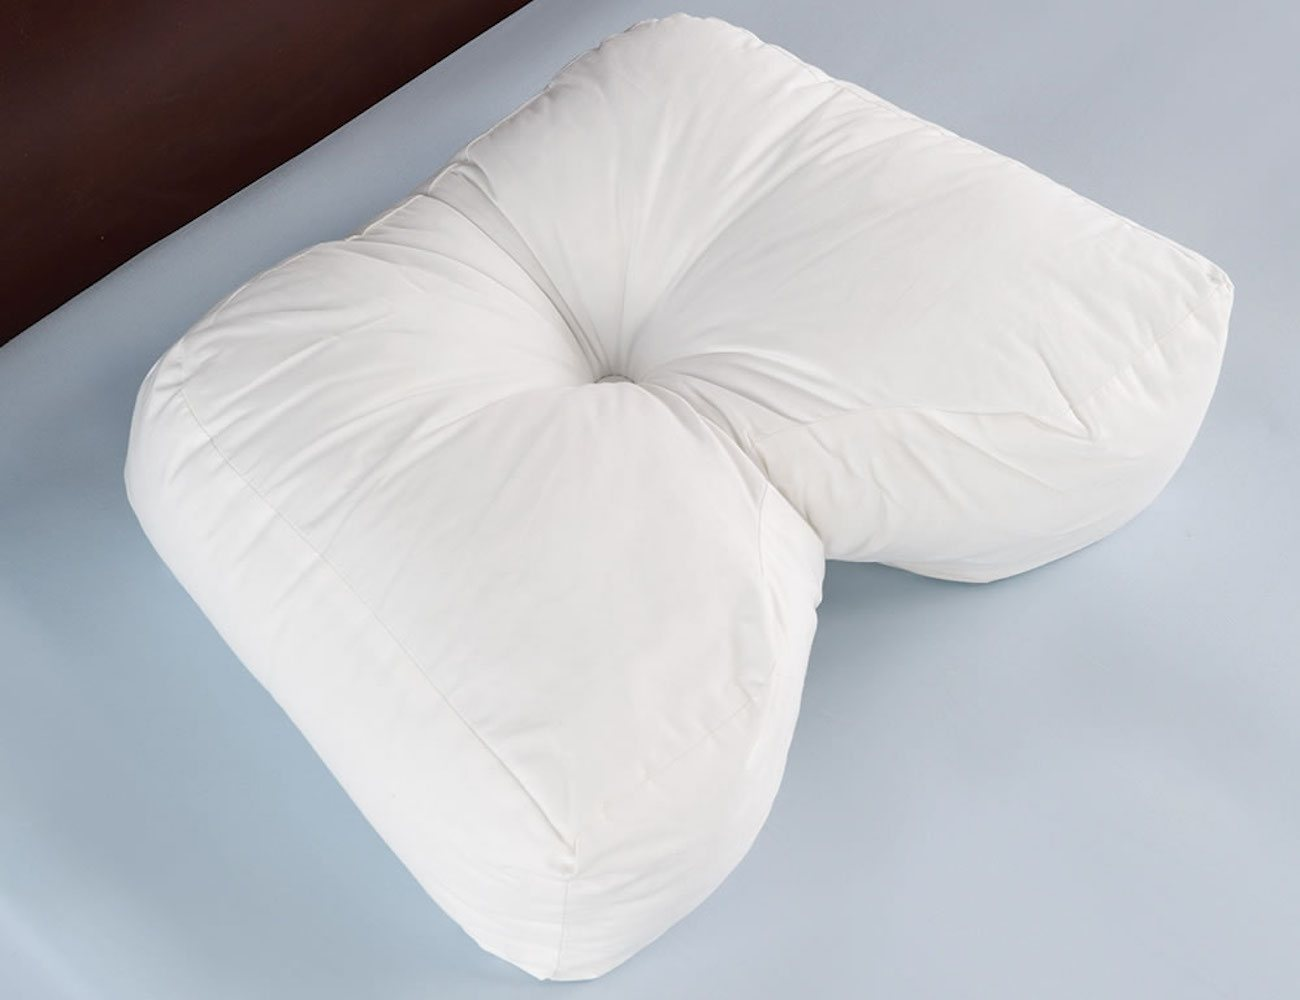 Adjustable Beds For Neck Pain : Pillows for side sleepers oosing the best pillow